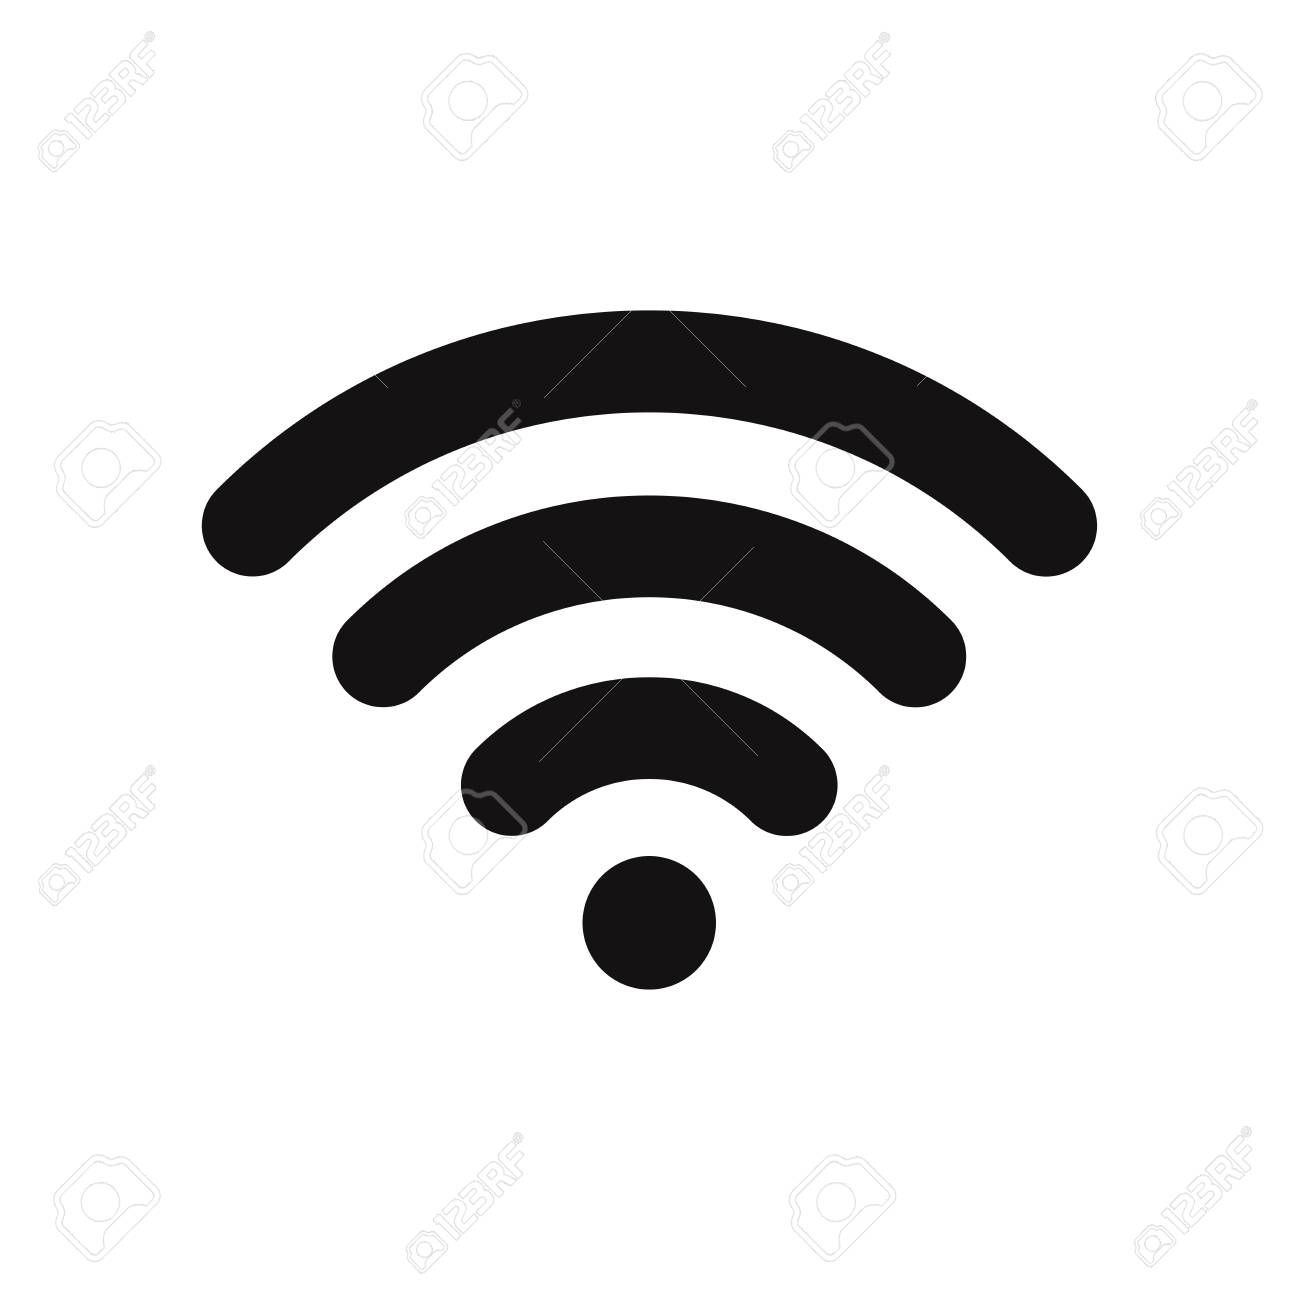 wifi signal icon, wireless symbol connection, internet, network Wireless Network Connection Symbol vector wifi signal icon, wireless symbol connection, internet, network flat vector sign isolated on white background simple vector illustration for